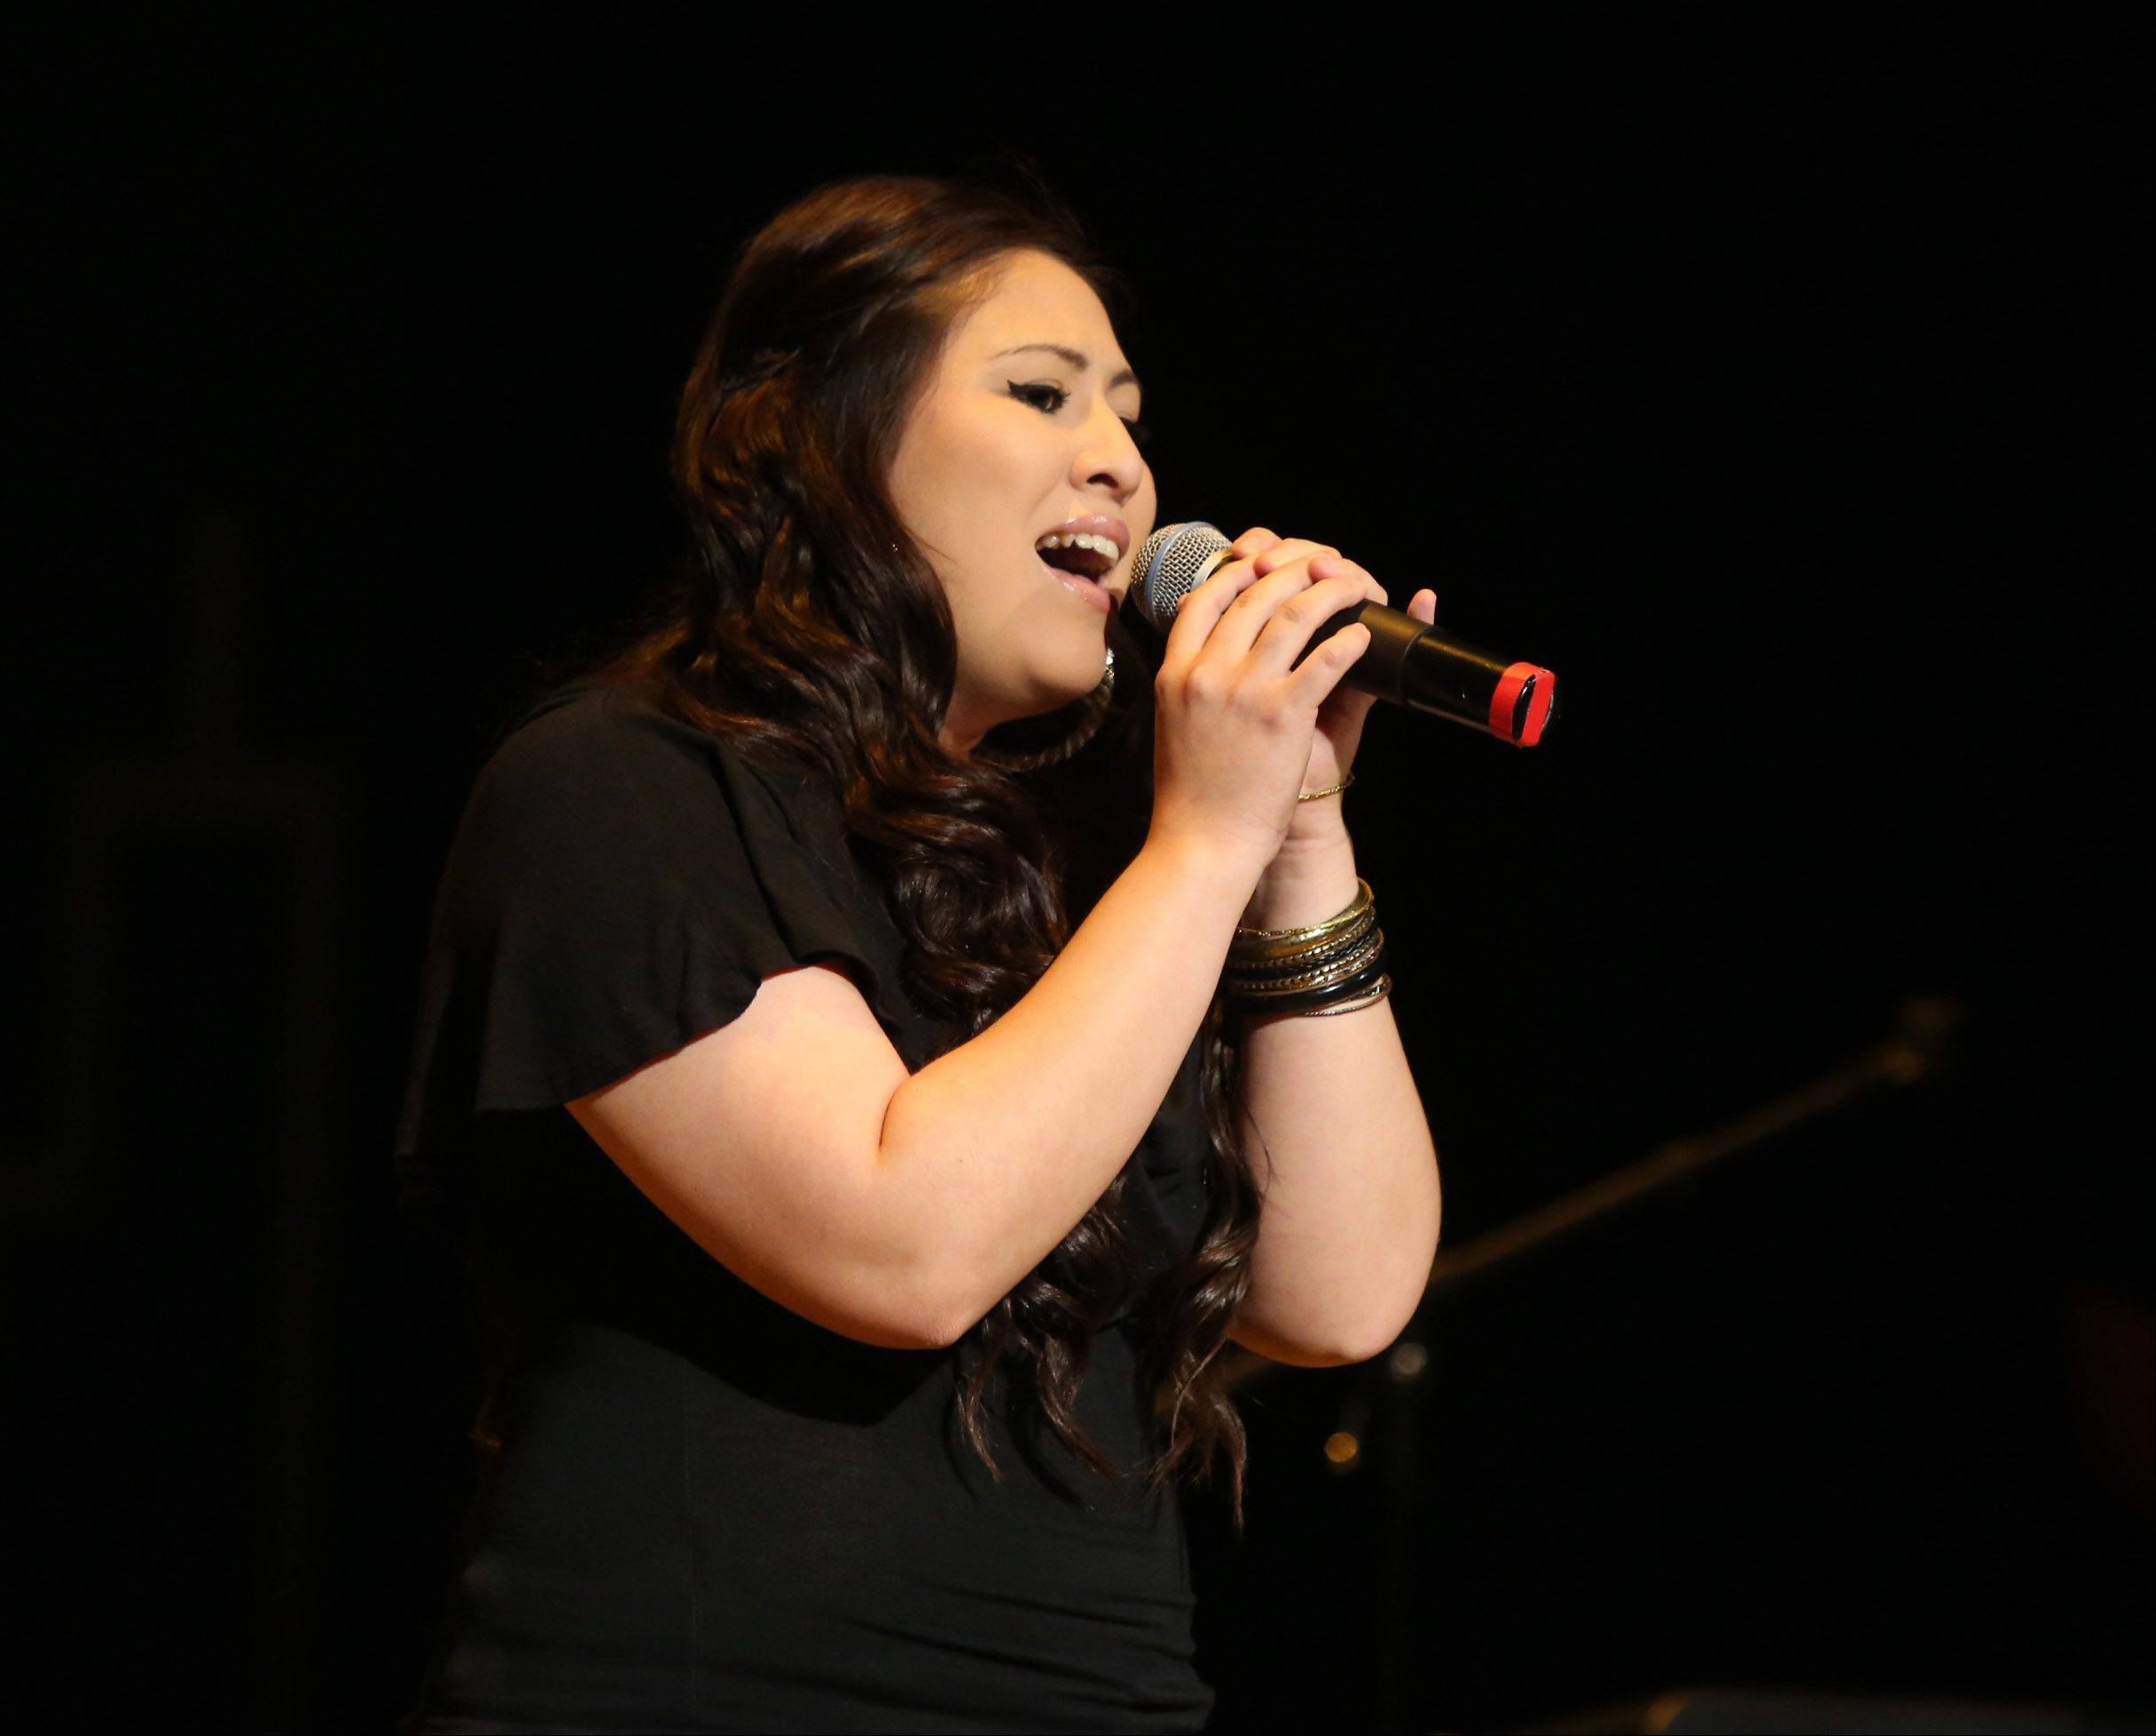 Alex Guzman of West Chicago sings Sunday during the second round of performances by finalists of the Suburban Chicago's Got Talent competition at the Metropolis Performing Arts Centre in Arlington Heights. The summer long talent contest is presented by the Daily Herald and sponsored by the Arlington Heights Chamber of Commerce.